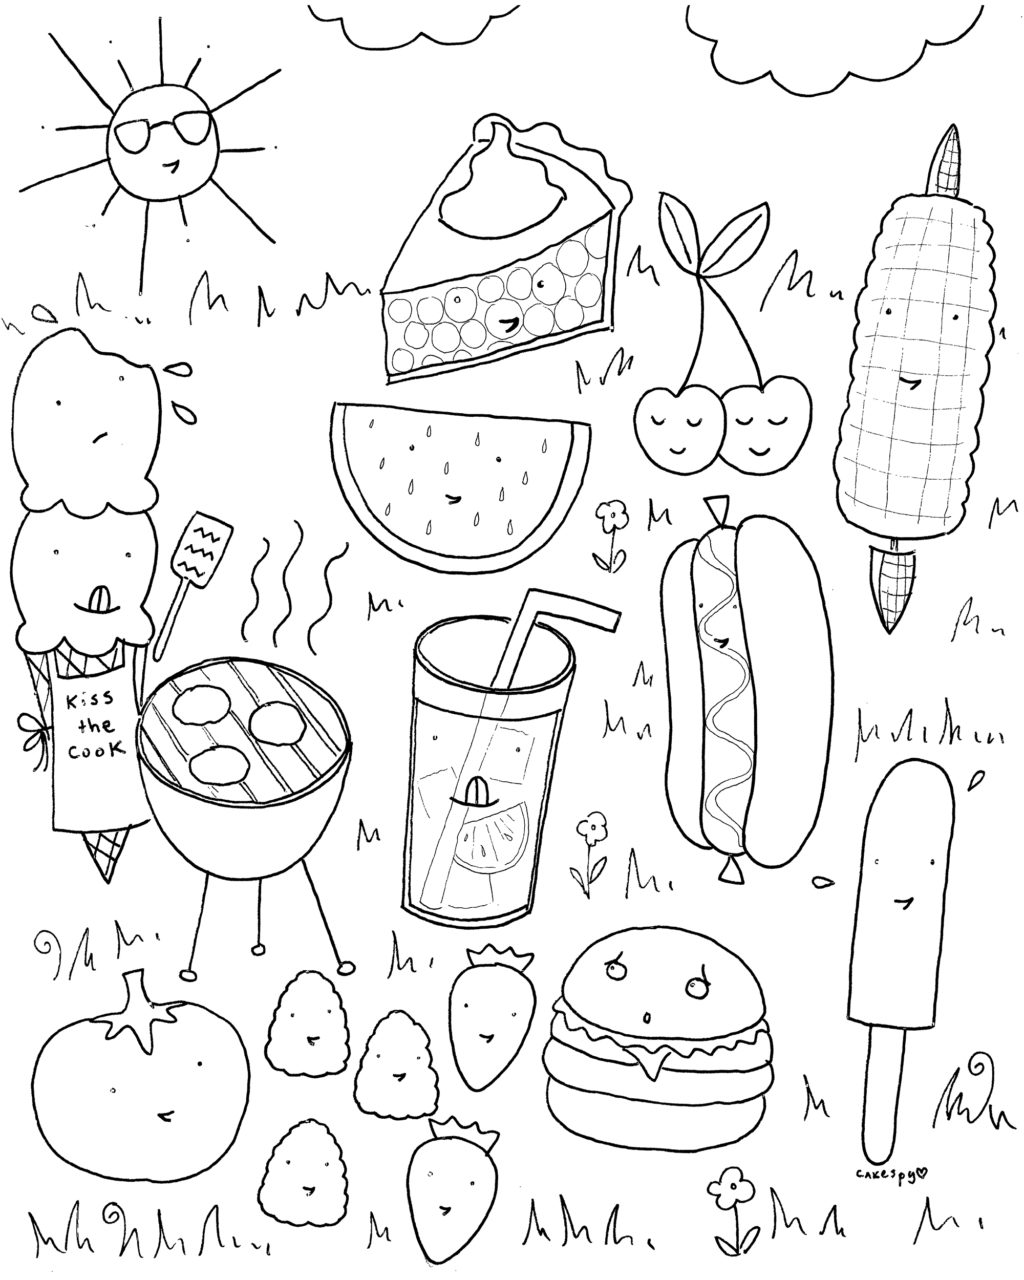 1024x1280 Coral Reef Food Web Coloring Pages Google Search. Fo New Picture